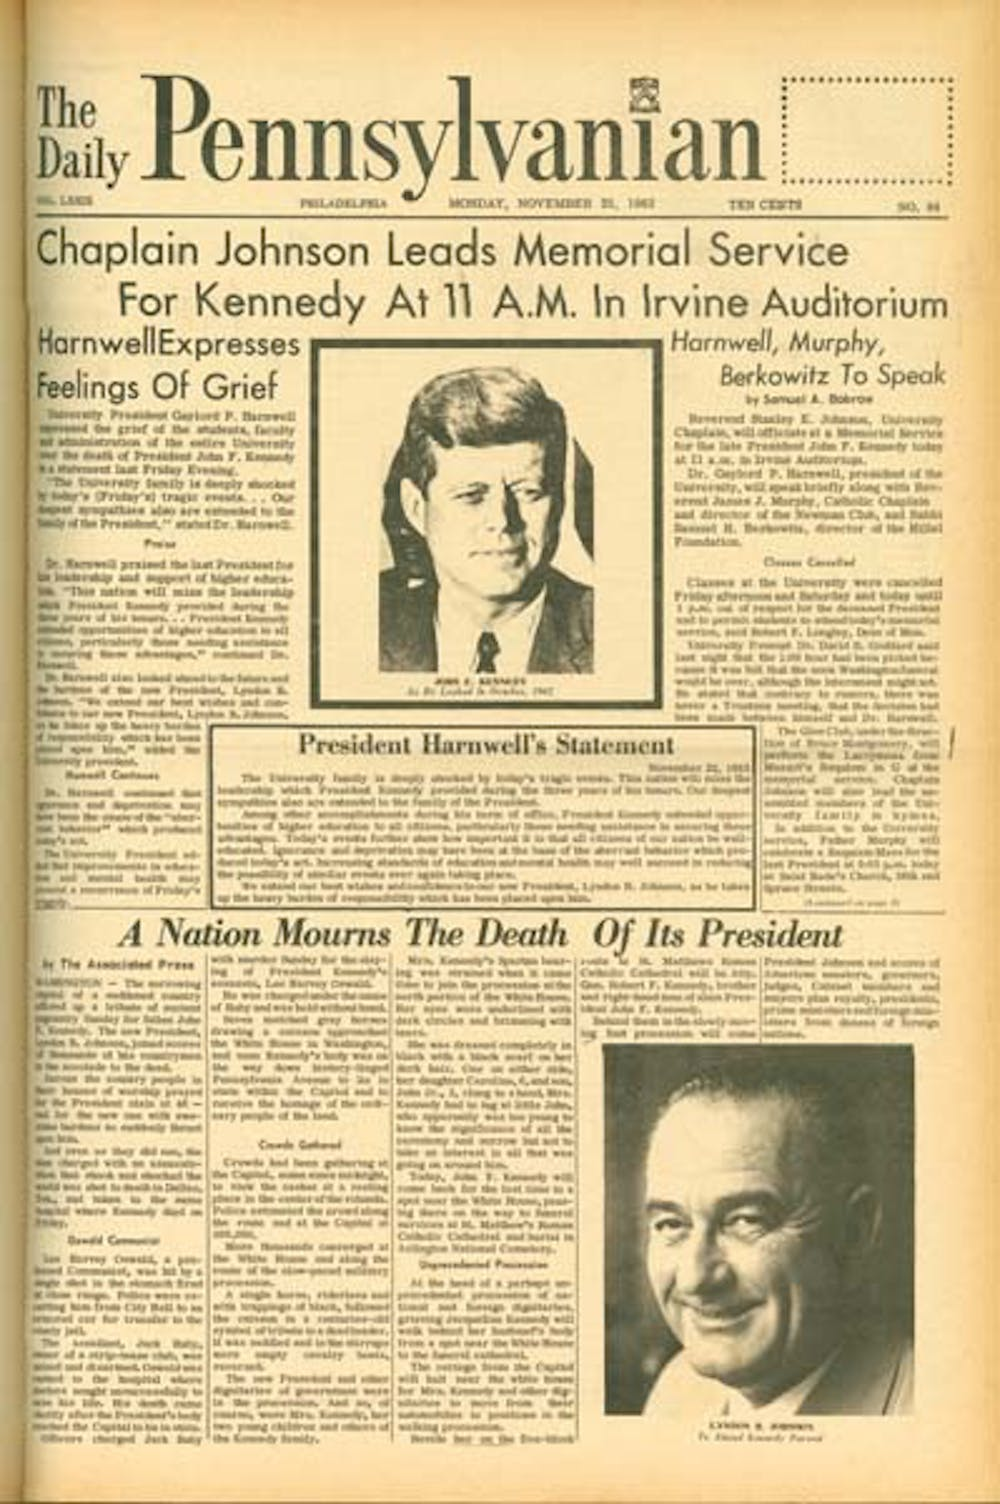 The front page of the first Daily Pennsylvanian after Kennedy's death was devoted entirely to the former president.